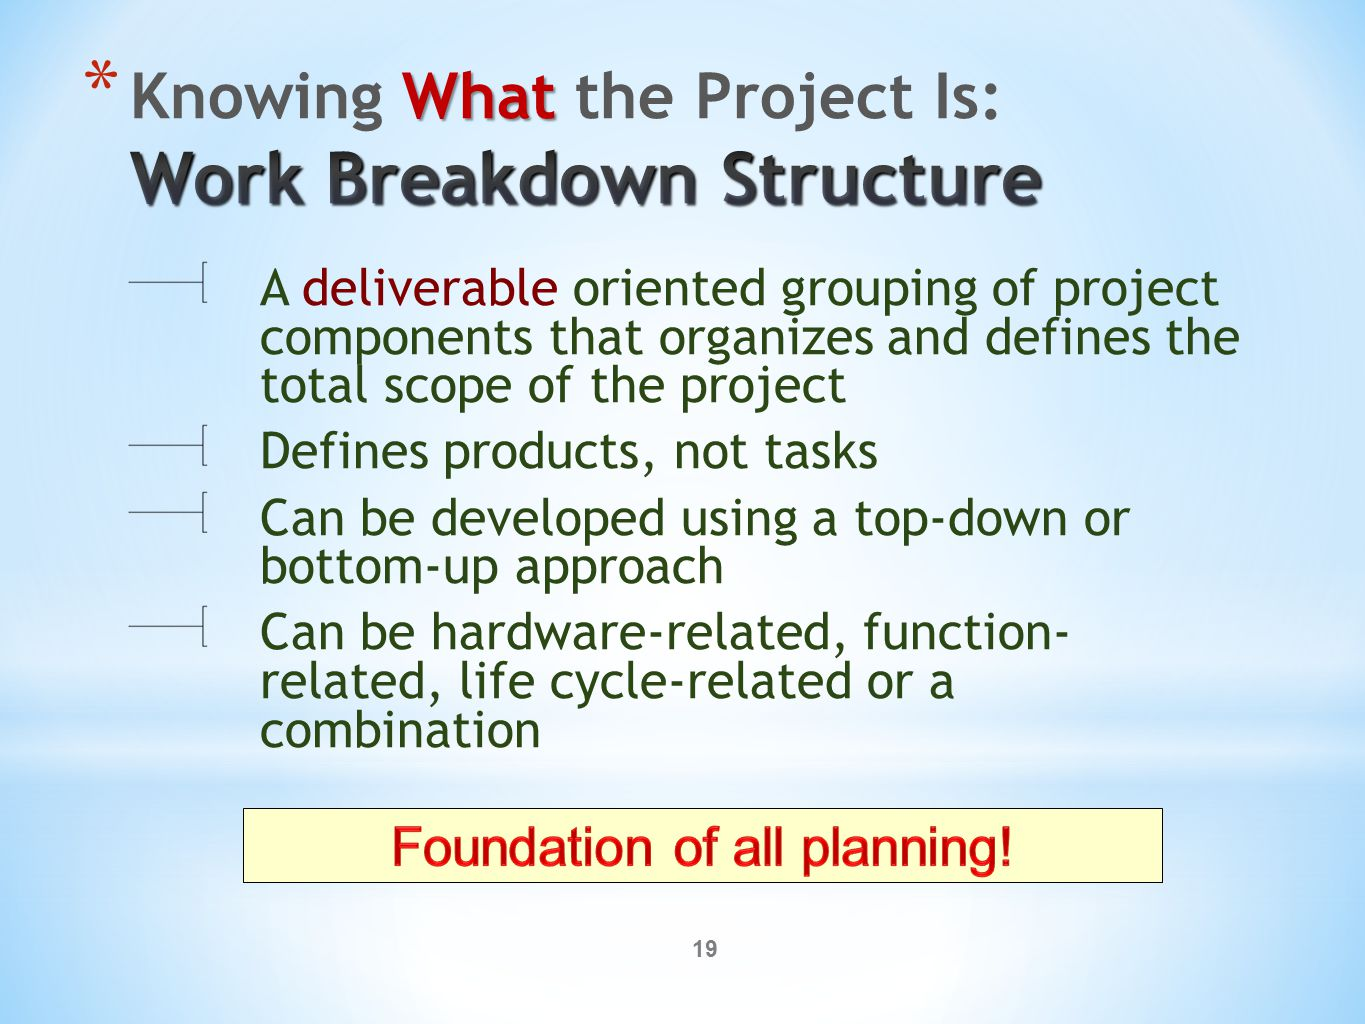 19 A deliverable oriented grouping of project components that organizes and defines the total scope of the project Defines products, not tasks Can be